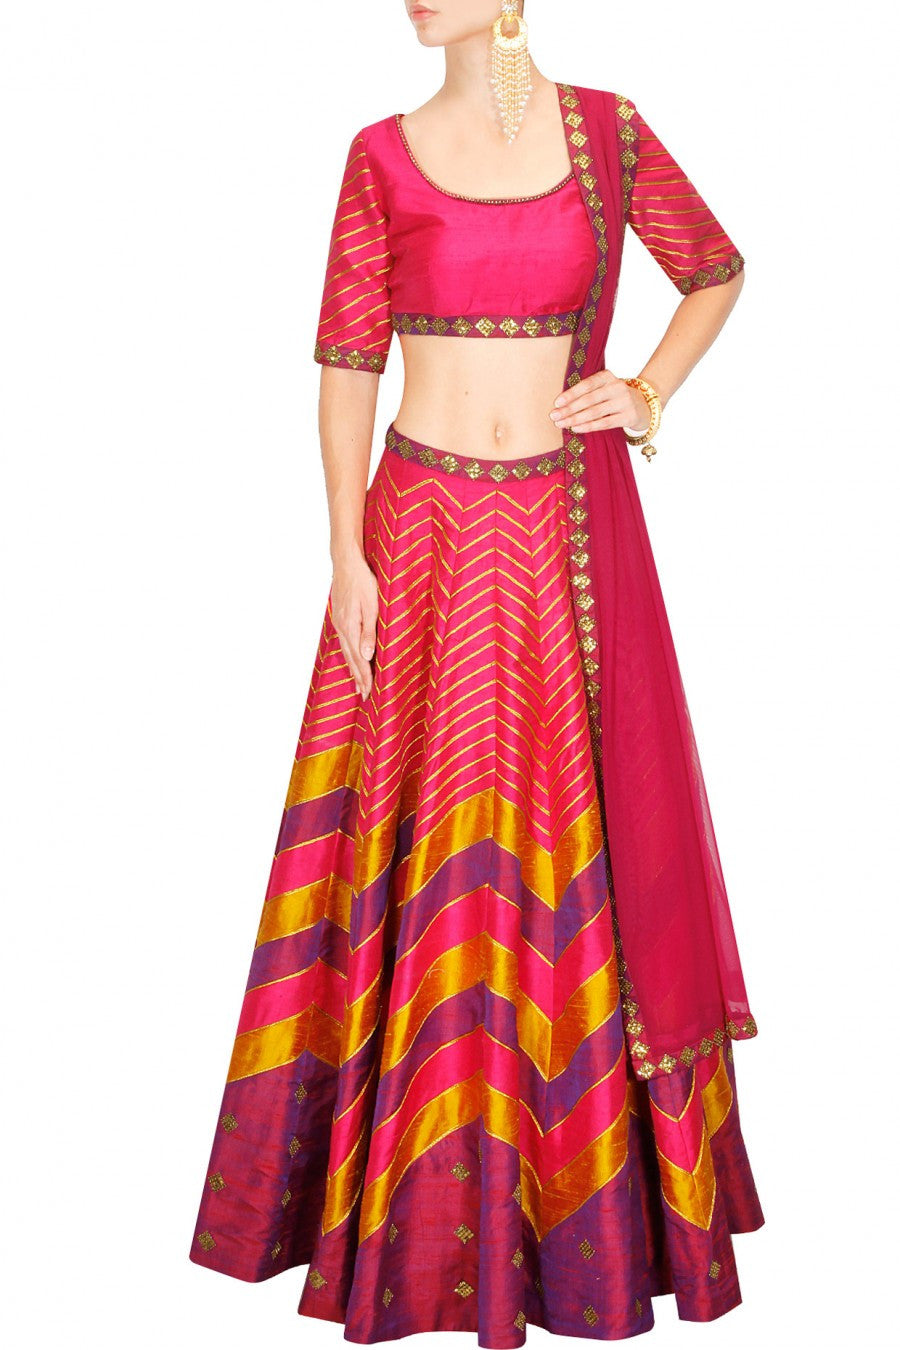 Pink Embroidered lehenga choli by Priyal Prakash